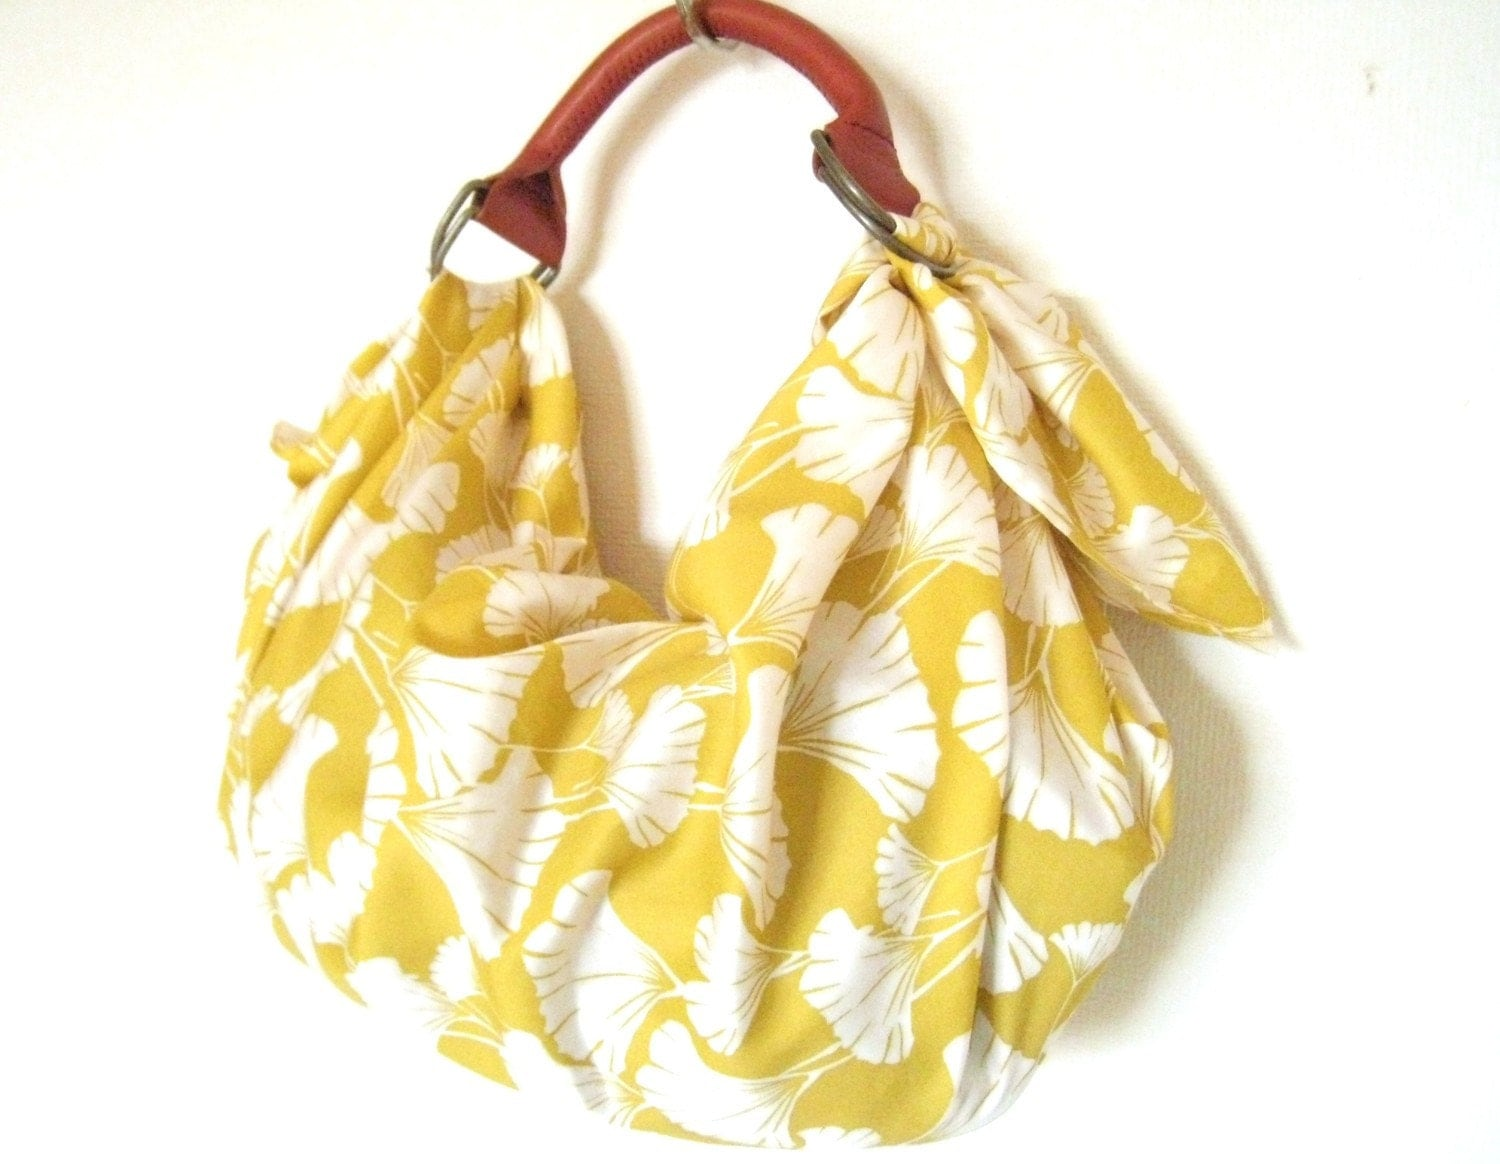 Organic Cotton Fabric Bag with the leather handle-ginkgo print